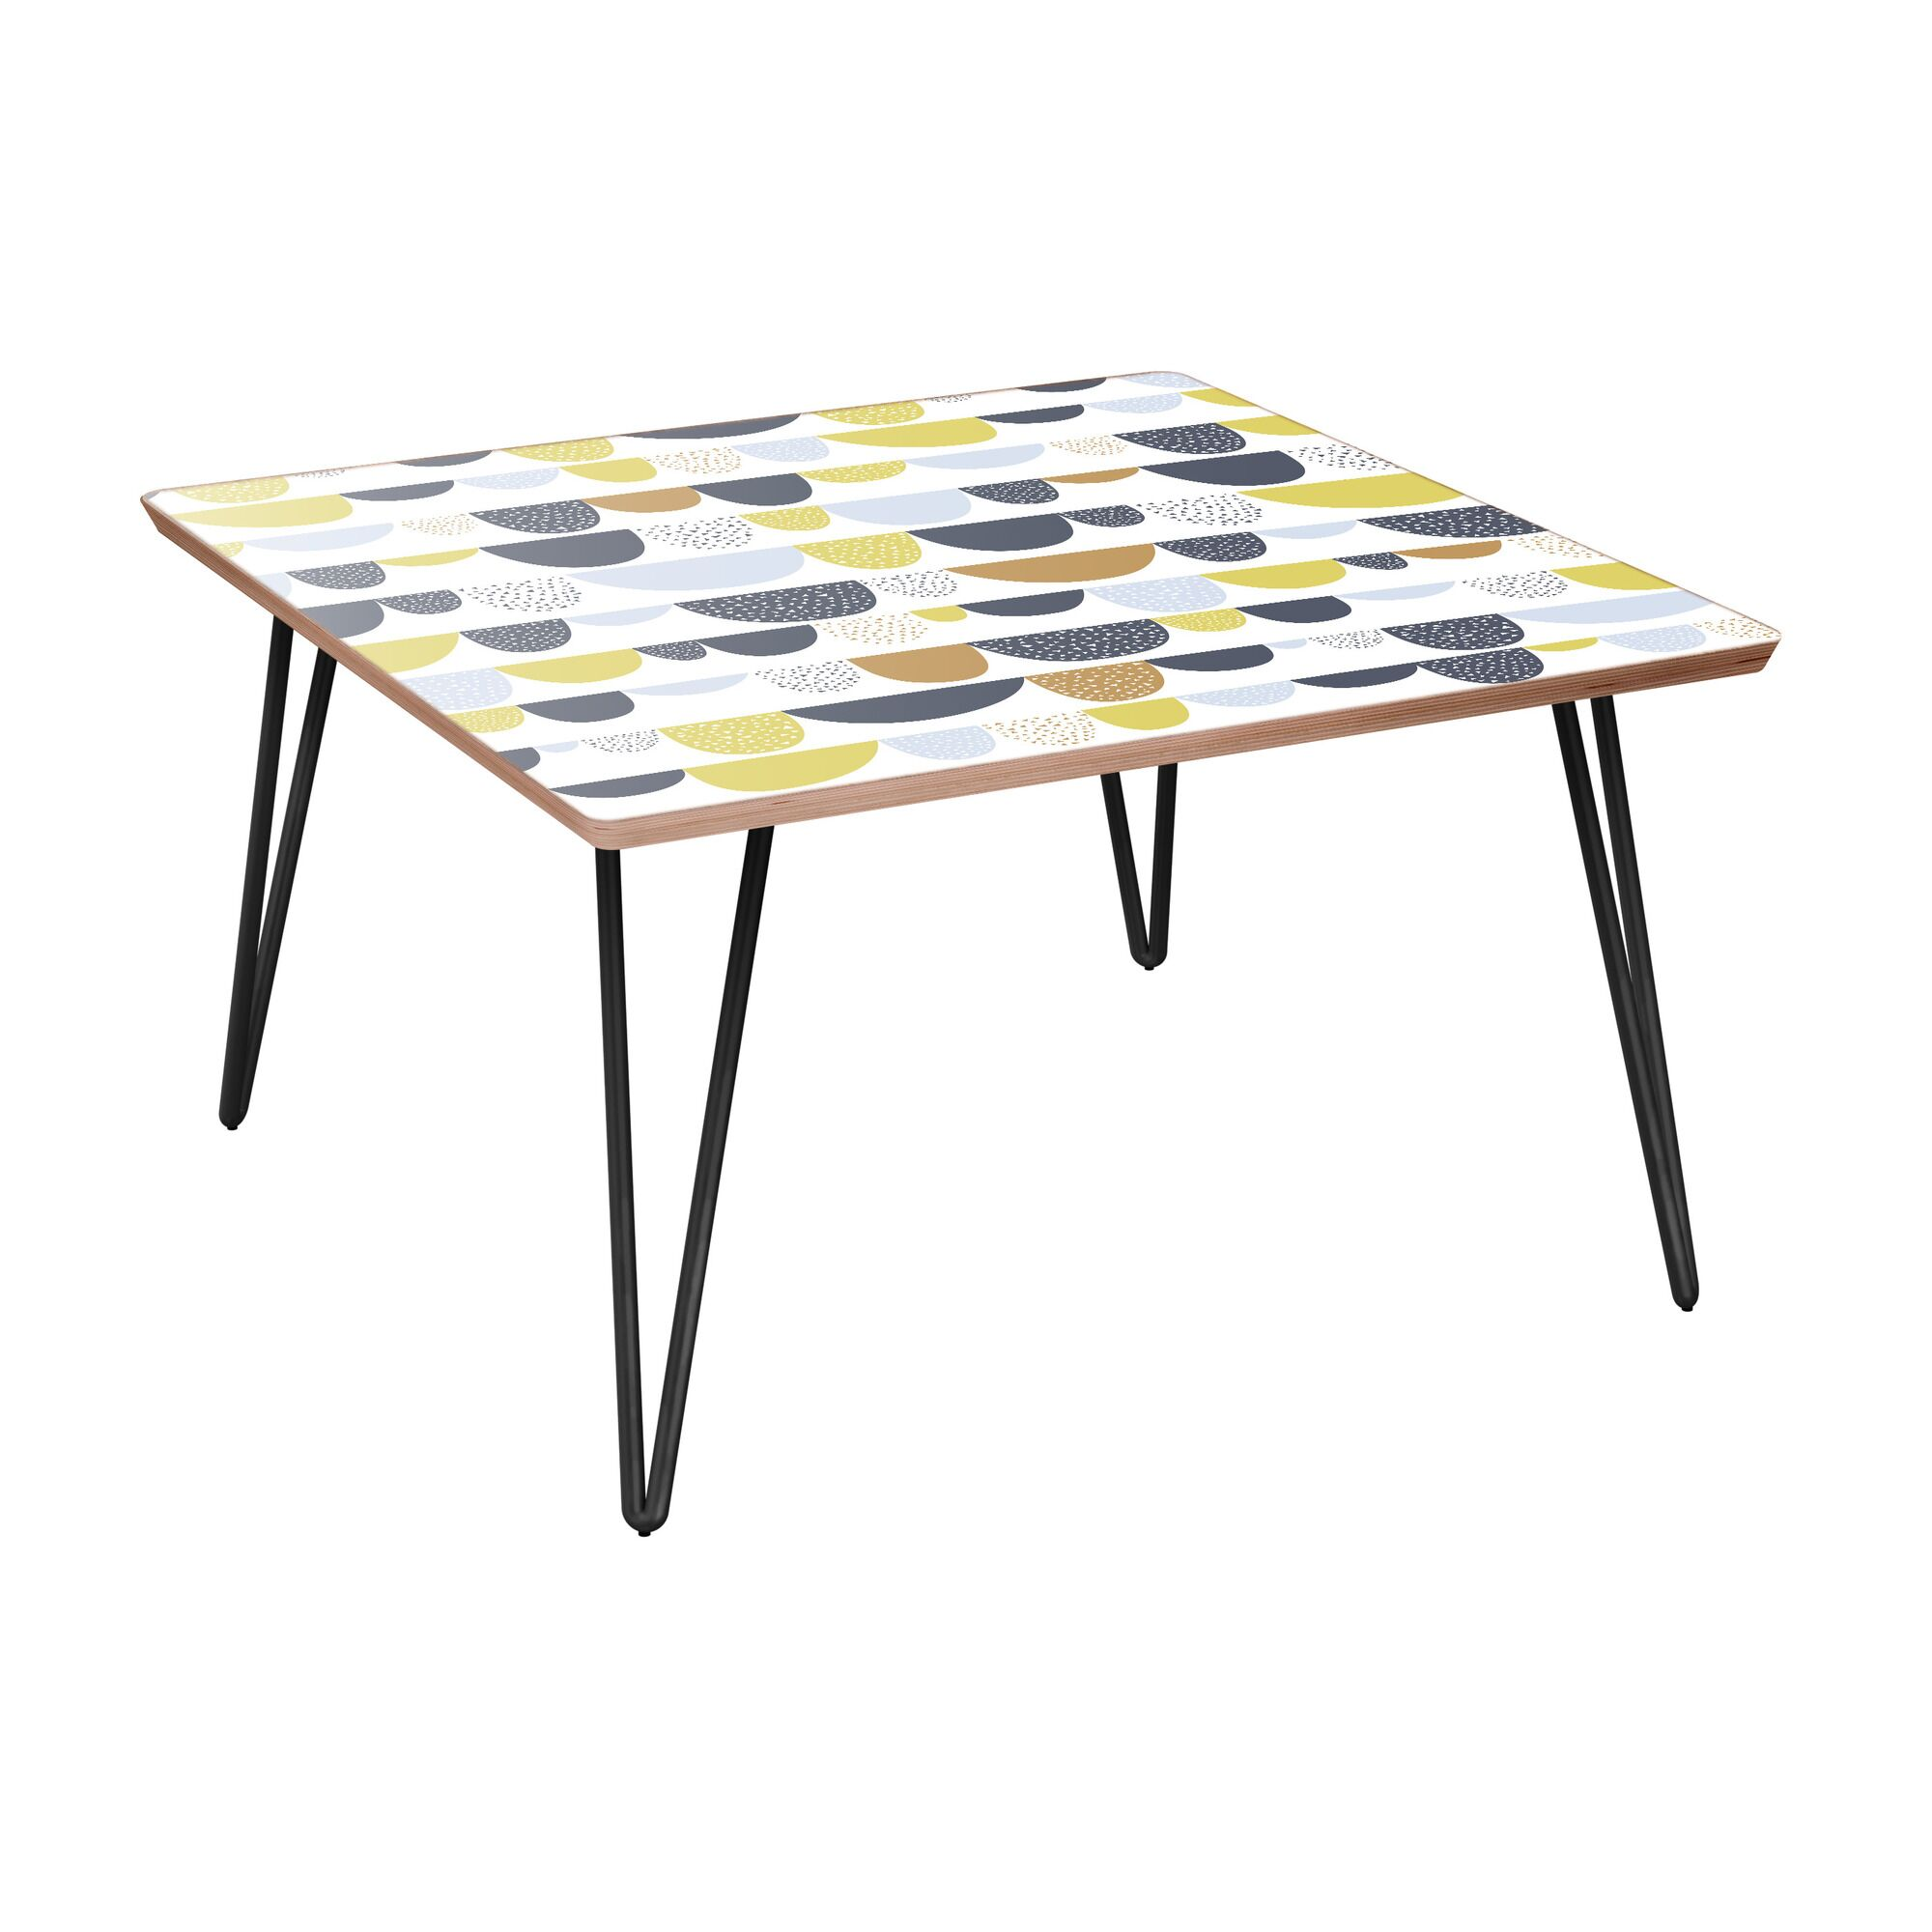 Ingersoll Coffee Table Table Base Color: Black, Table Top Color: Walnut